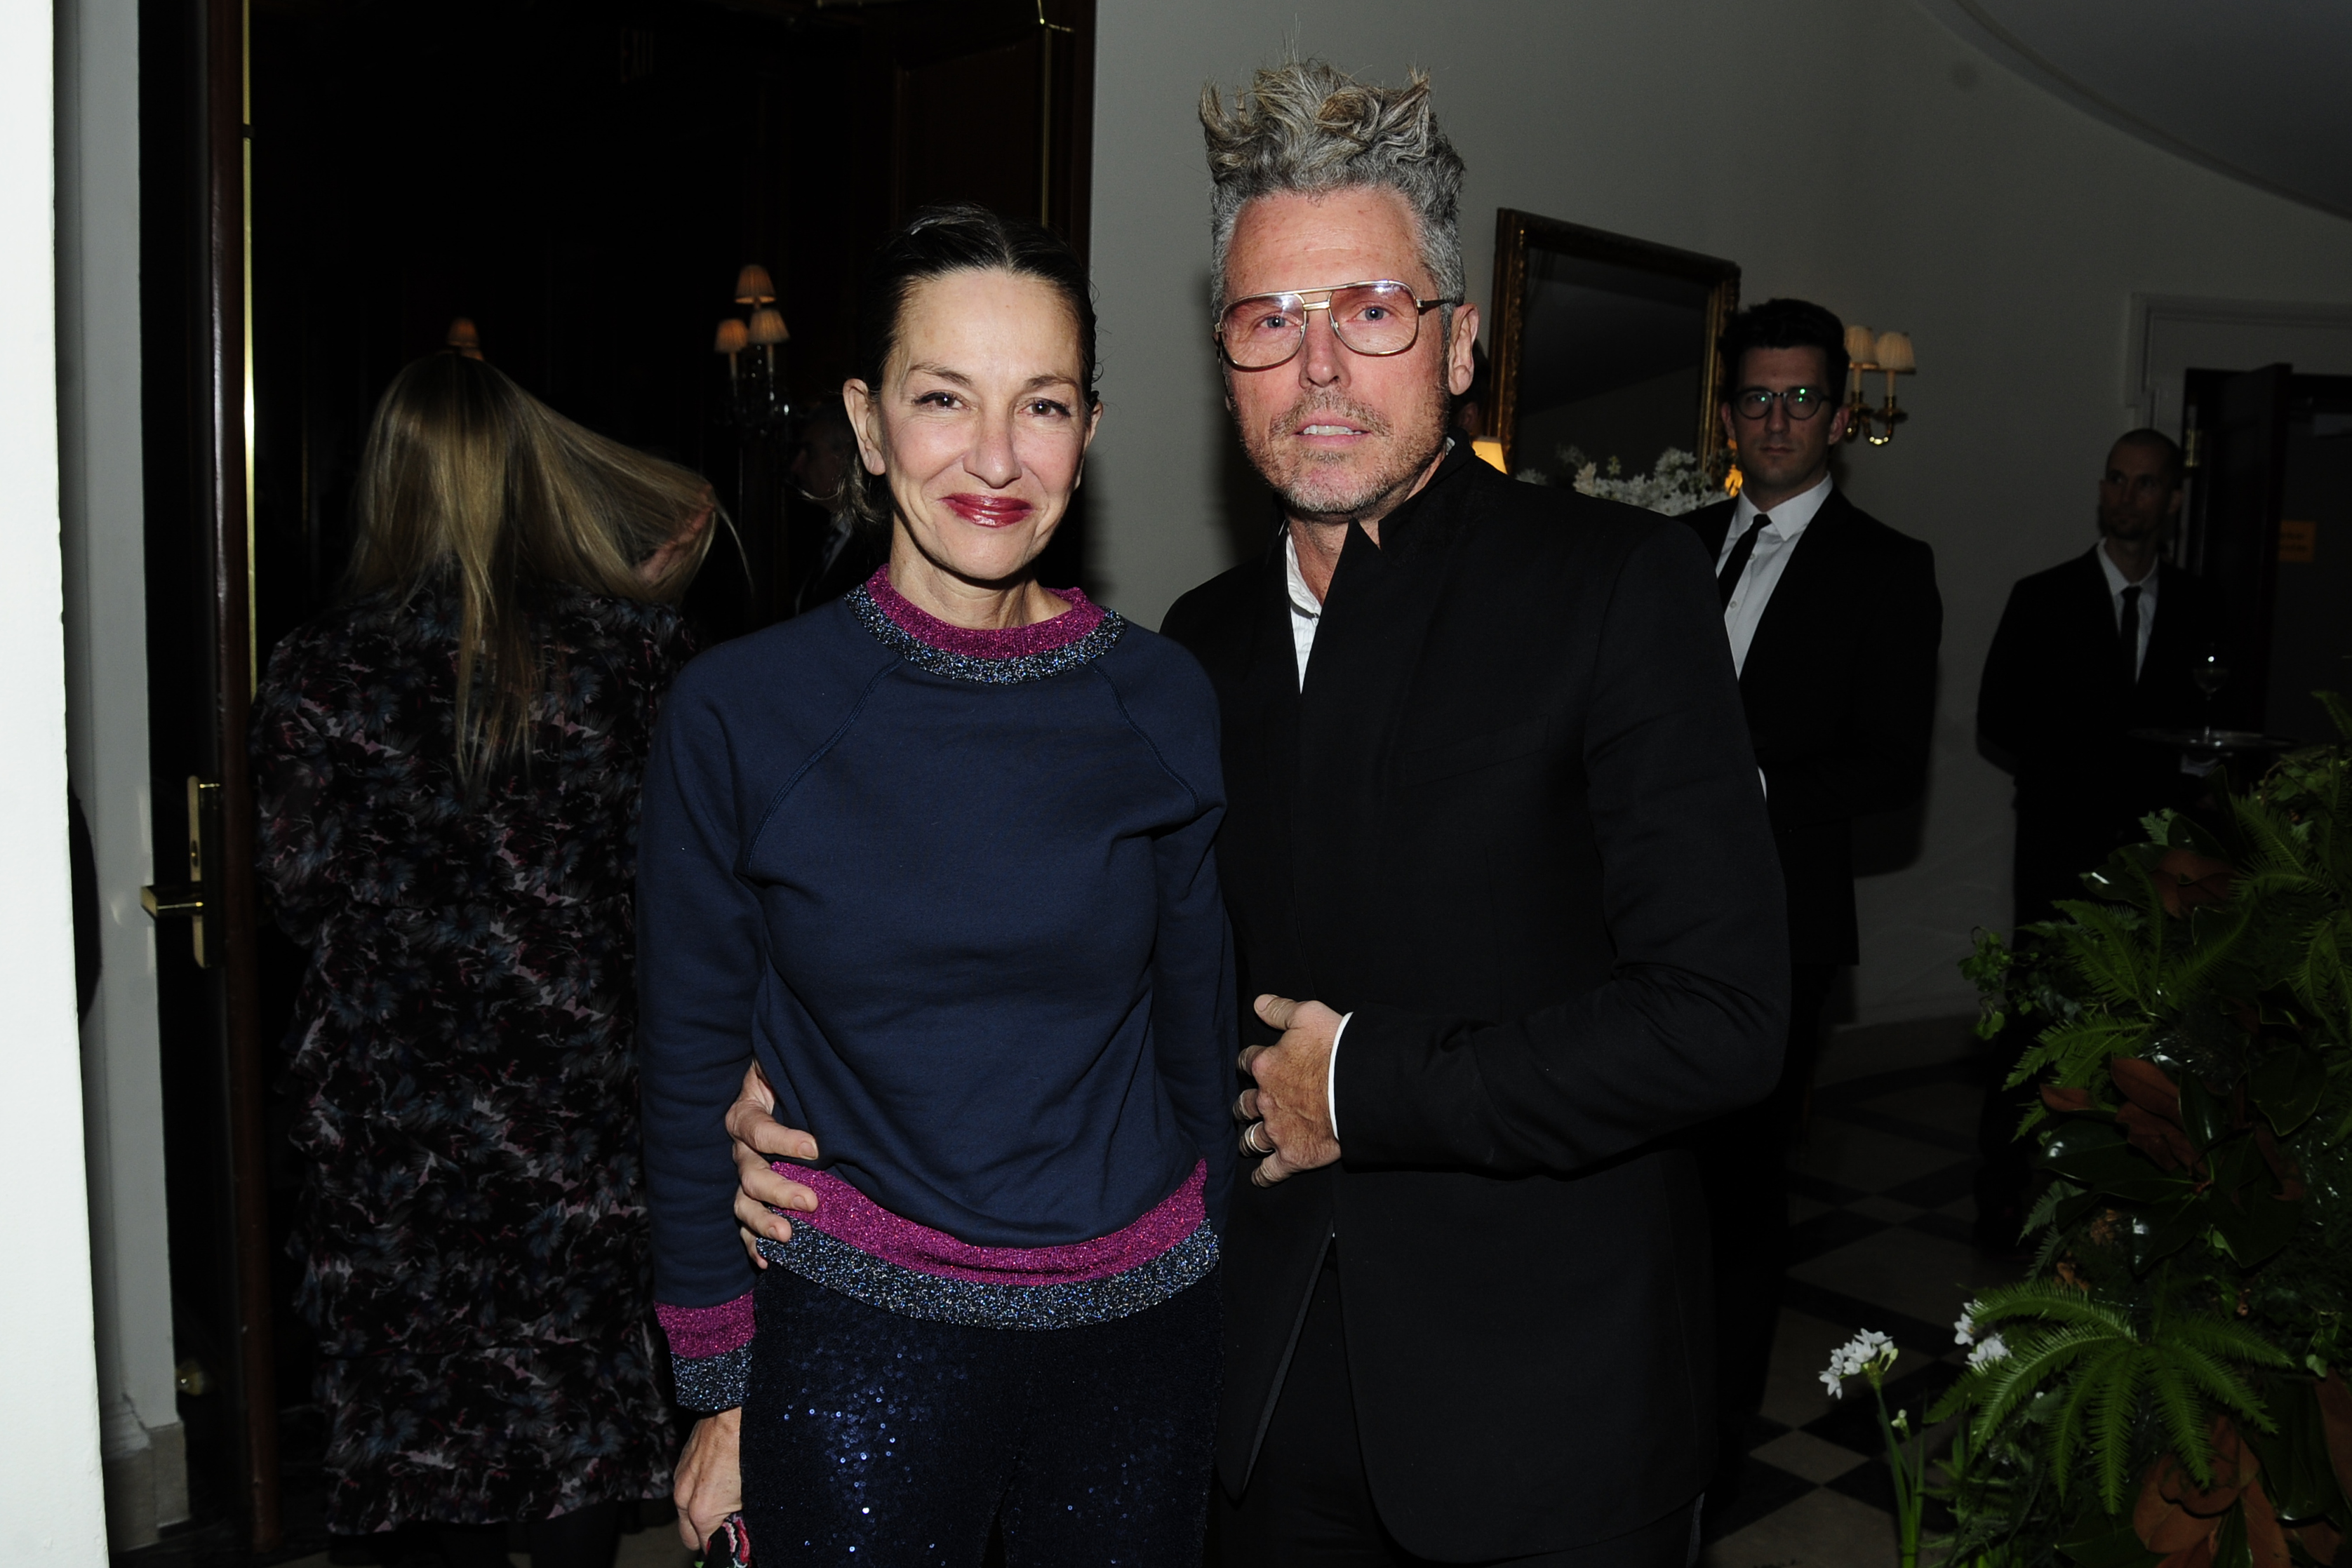 Art Dealer Bill Powers and His Fashion-Designer Wife Have Sold Off Their Art-Edition Company to Pay Off Business Debts